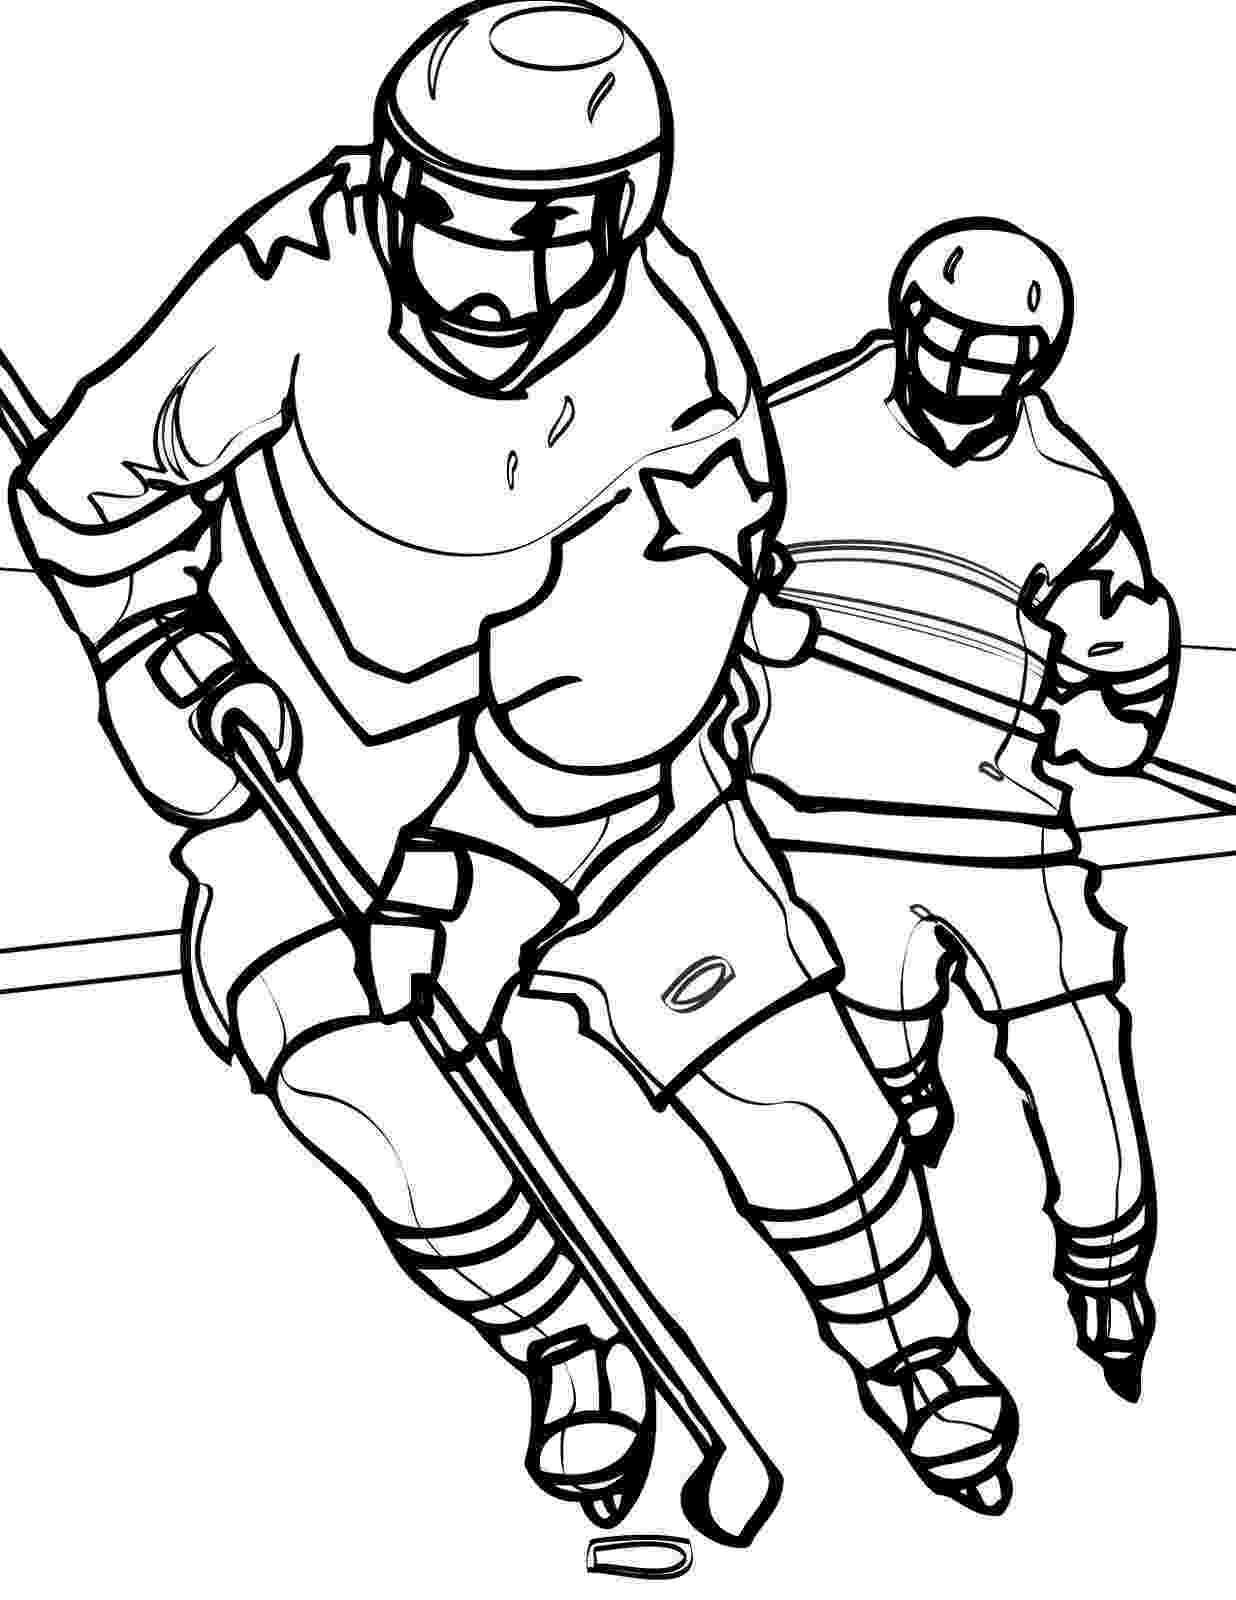 hockey coloring page franklin playing ice hockey coloring pages hellokidscom page hockey coloring